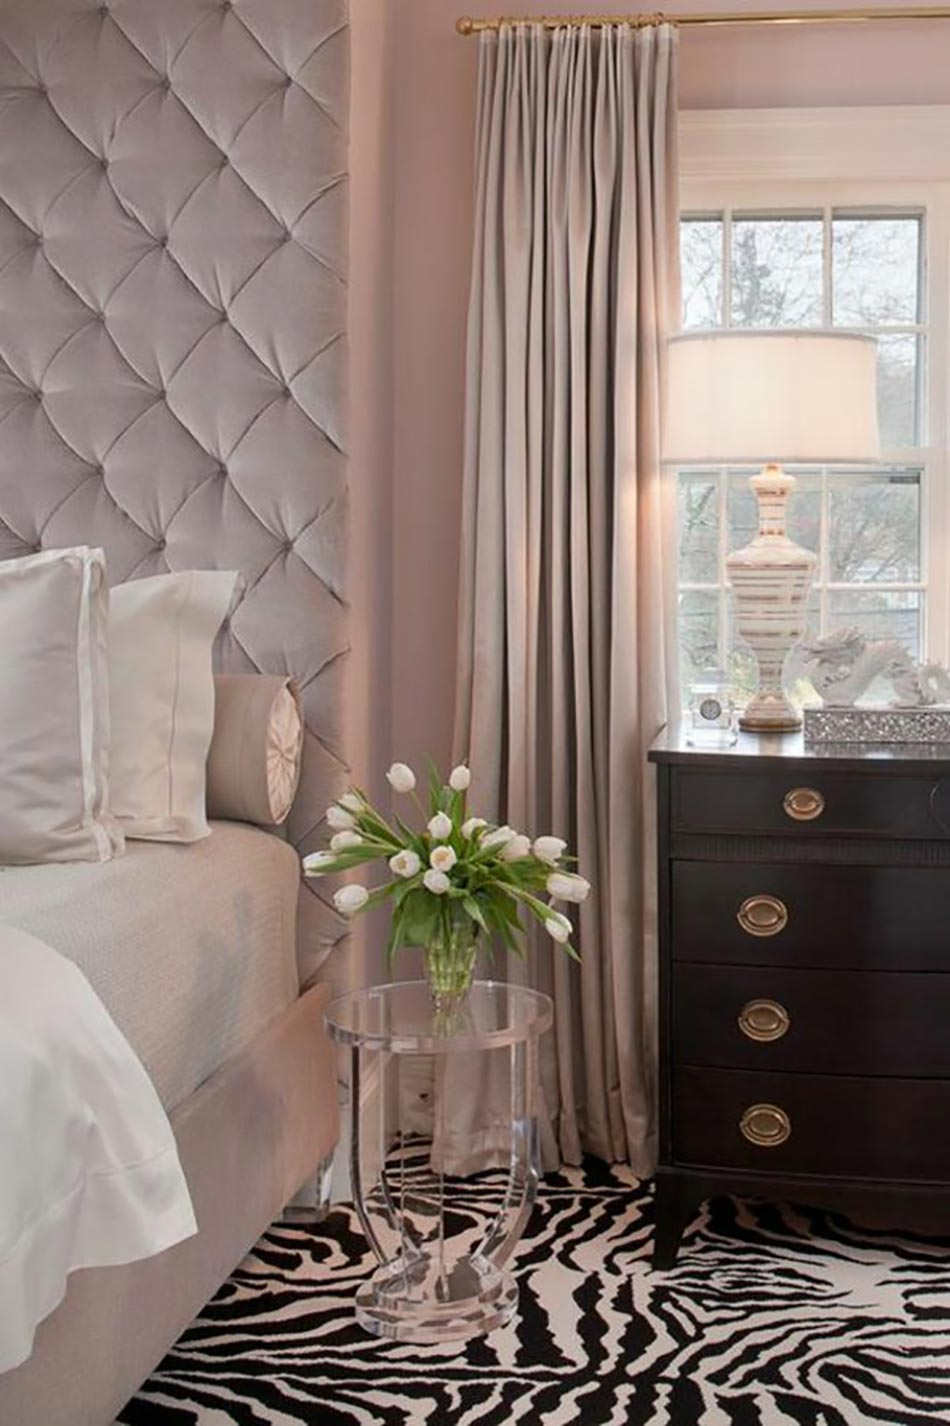 d co chambre originale aux imprim s z bre design feria. Black Bedroom Furniture Sets. Home Design Ideas